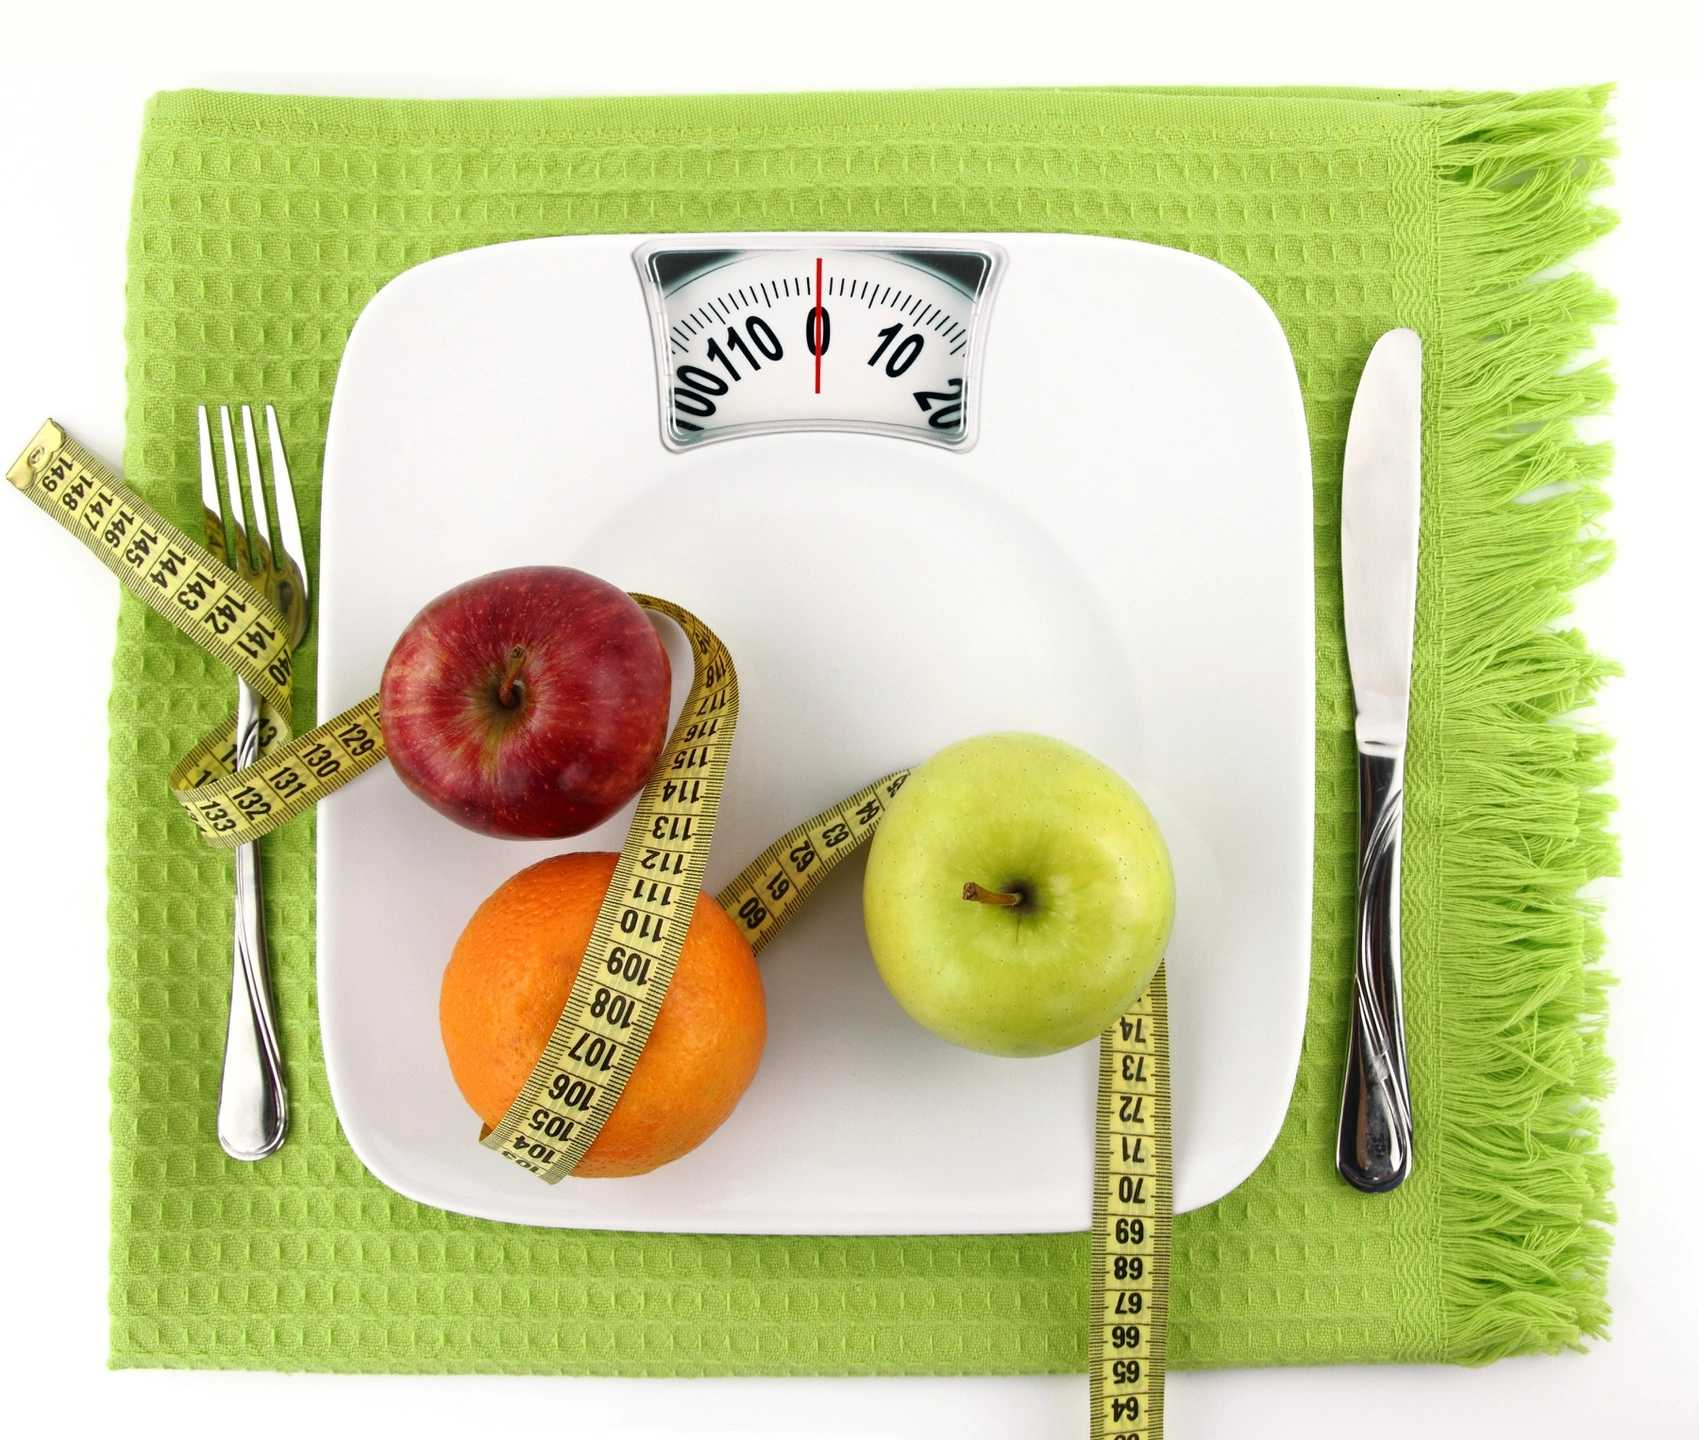 How much weight can you lose in 3 months on phentermine